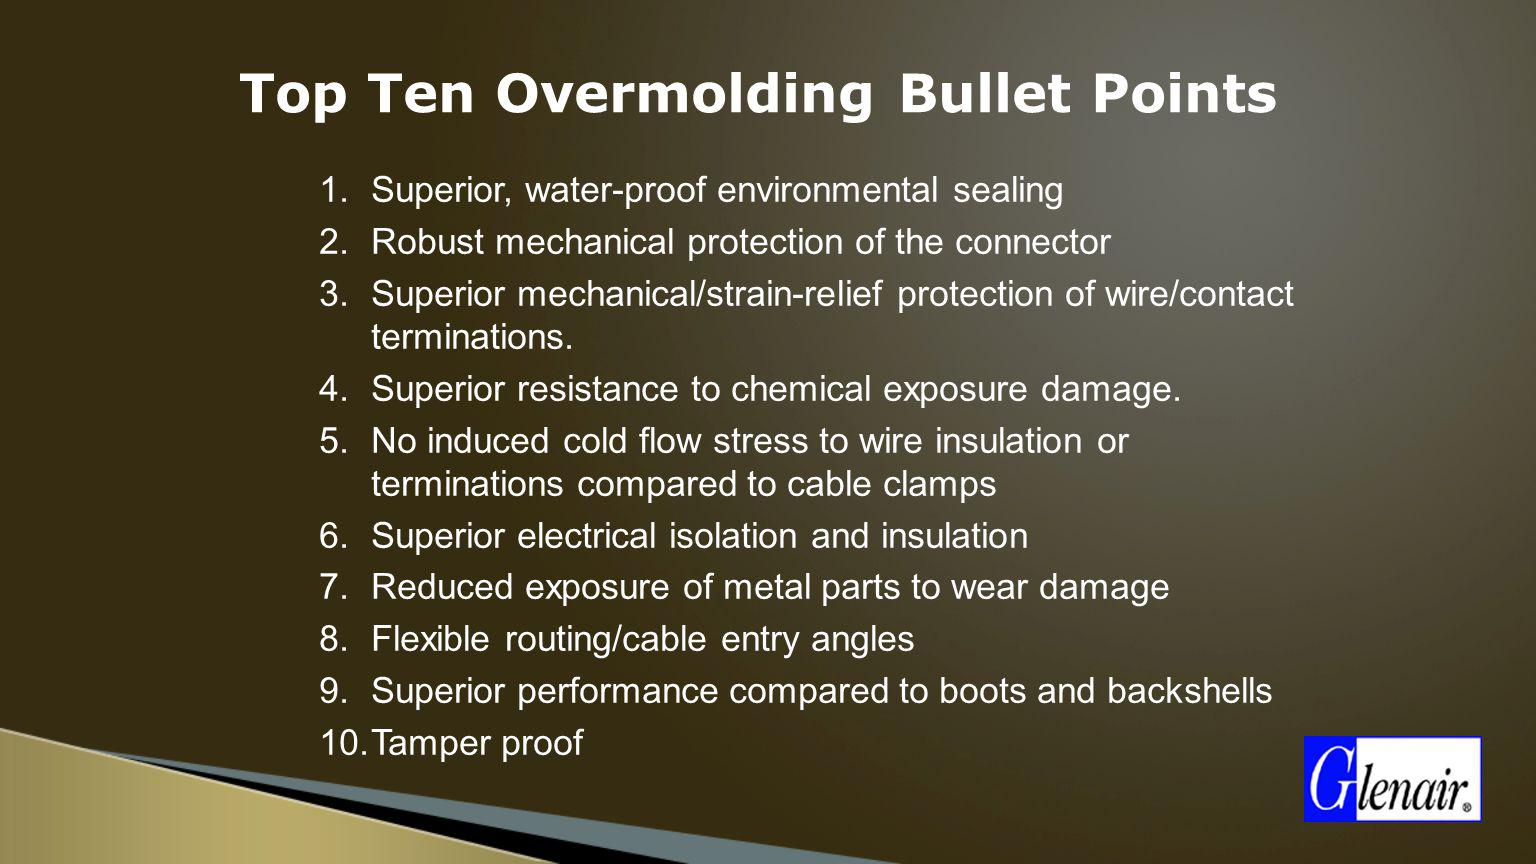 Top Ten Overmolding Bullet Points